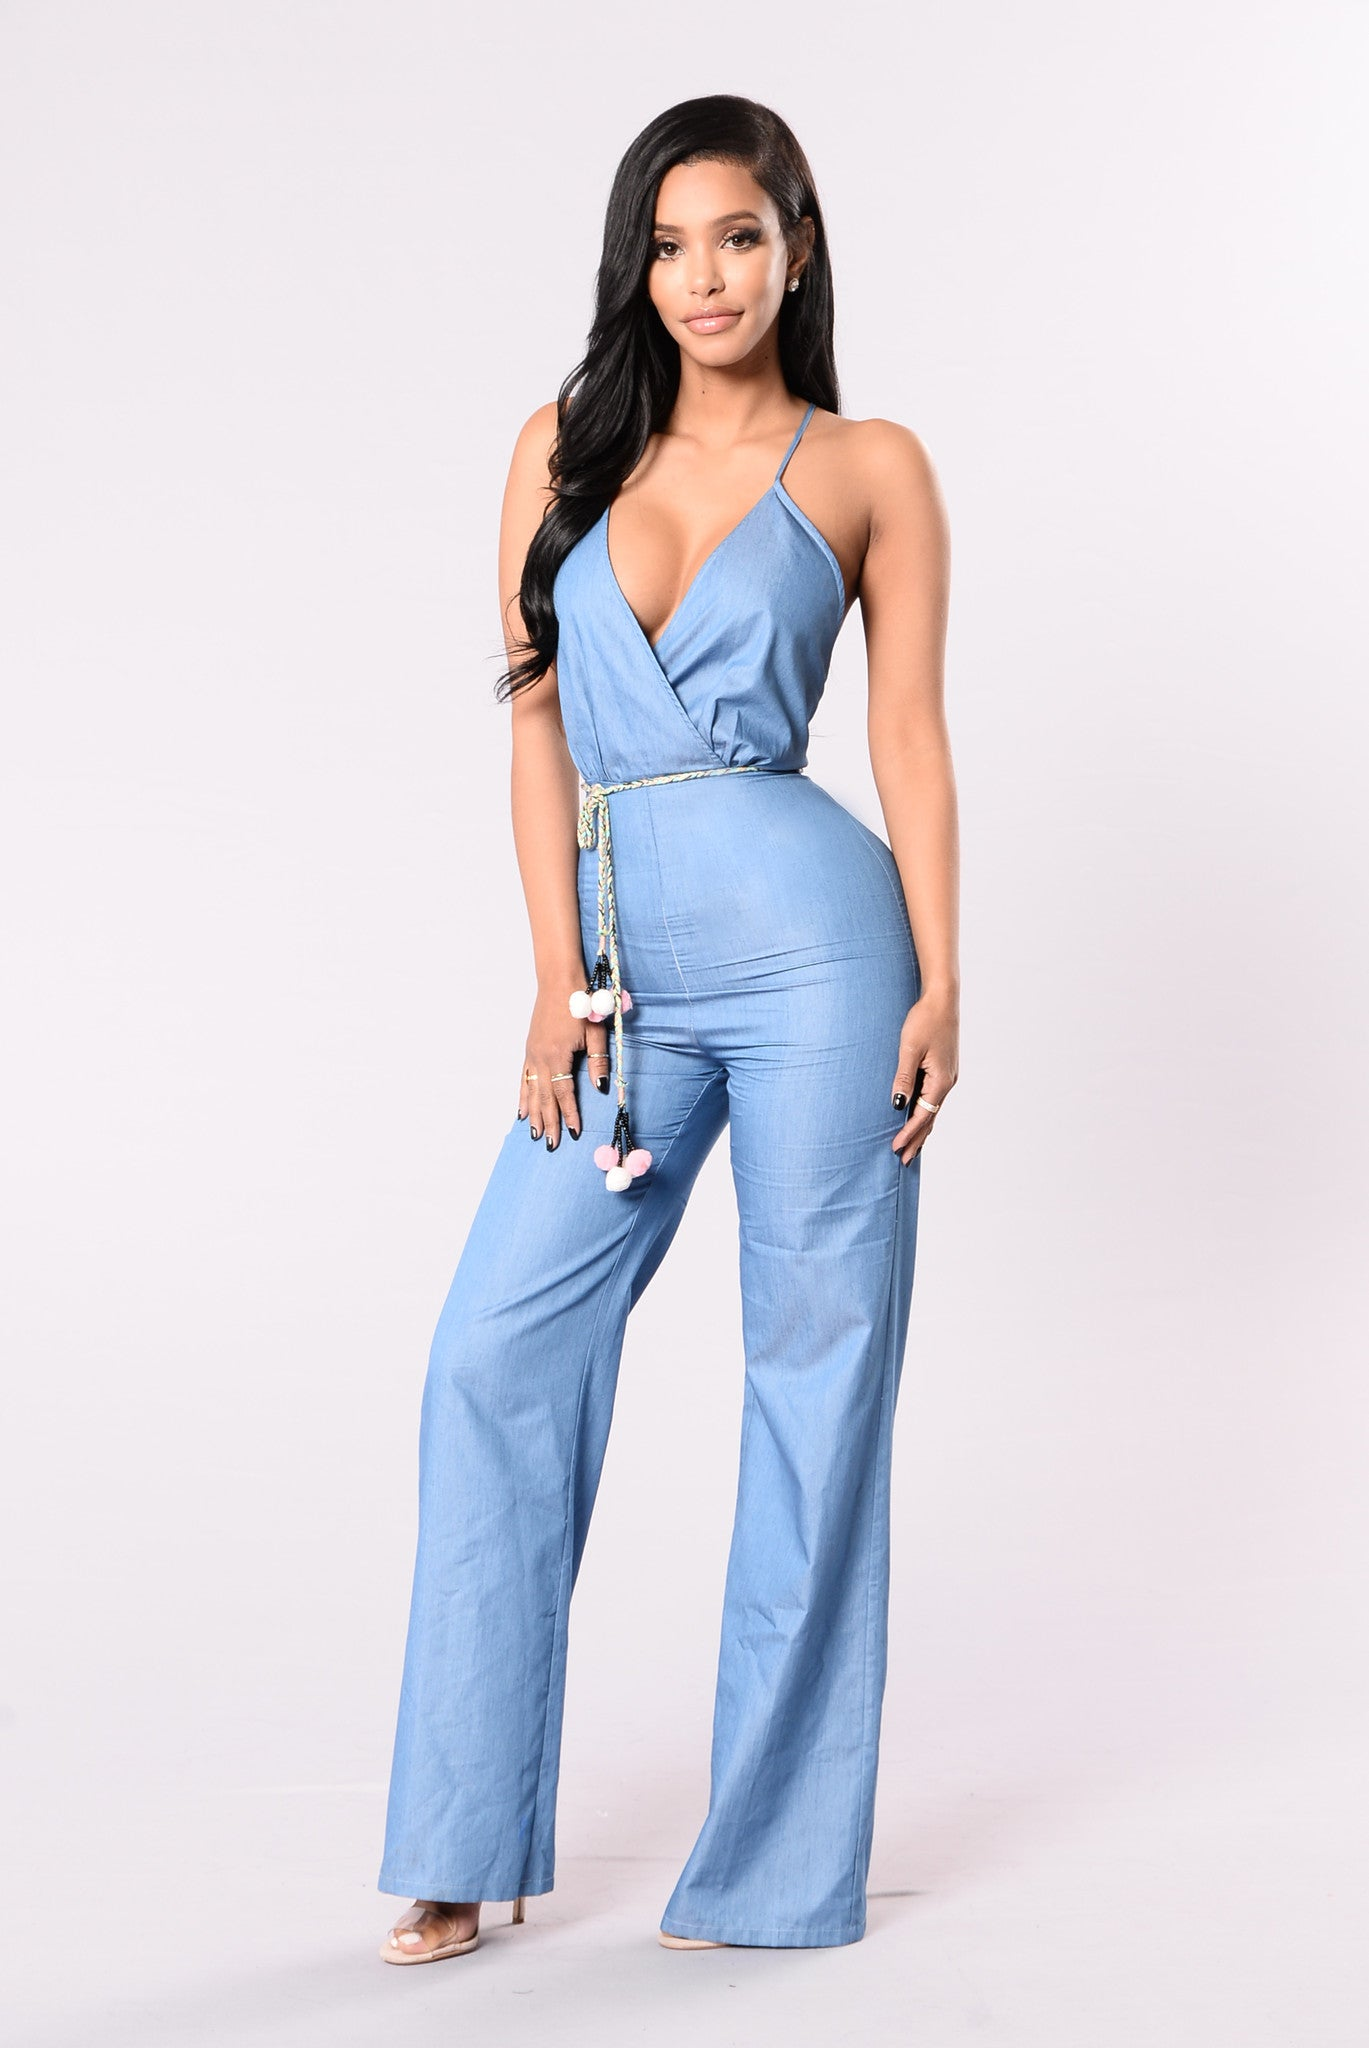 Buy SHEER-UP BABY BLUE JUMPSUIT for Women Online at Best Price in India is Rs Free Shipping, Cash on Delivery.